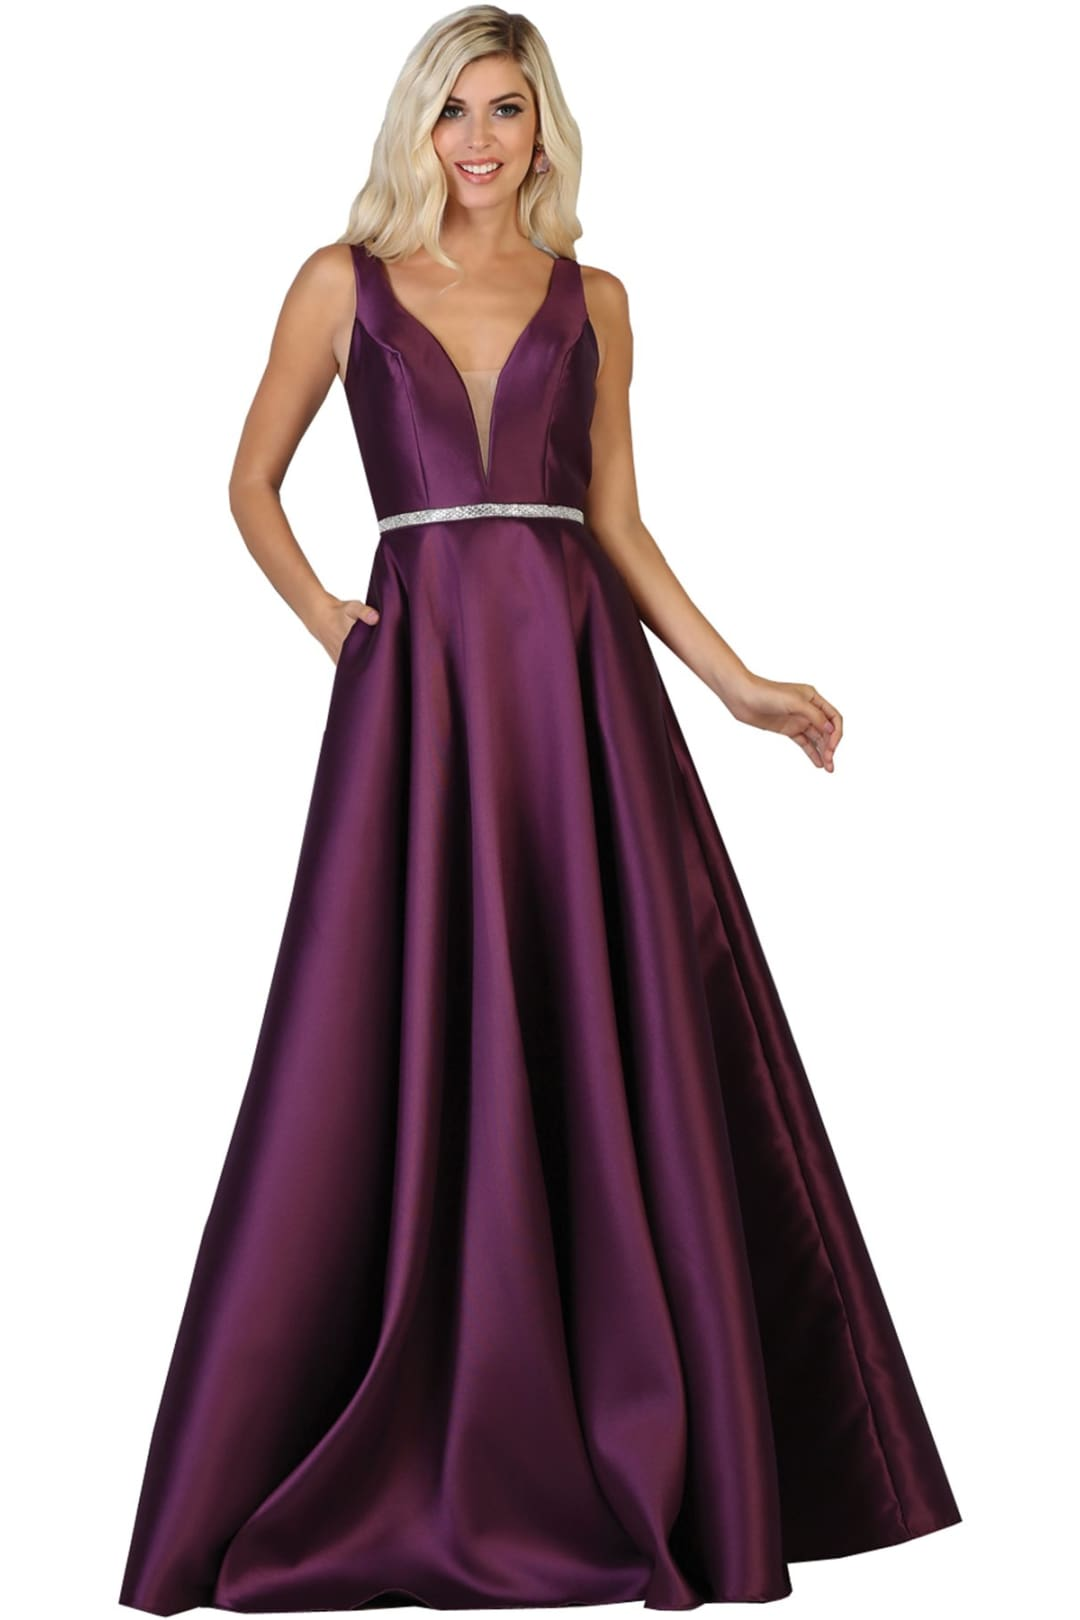 Simple Sleeveless Prom Dress - Eggplant / 4